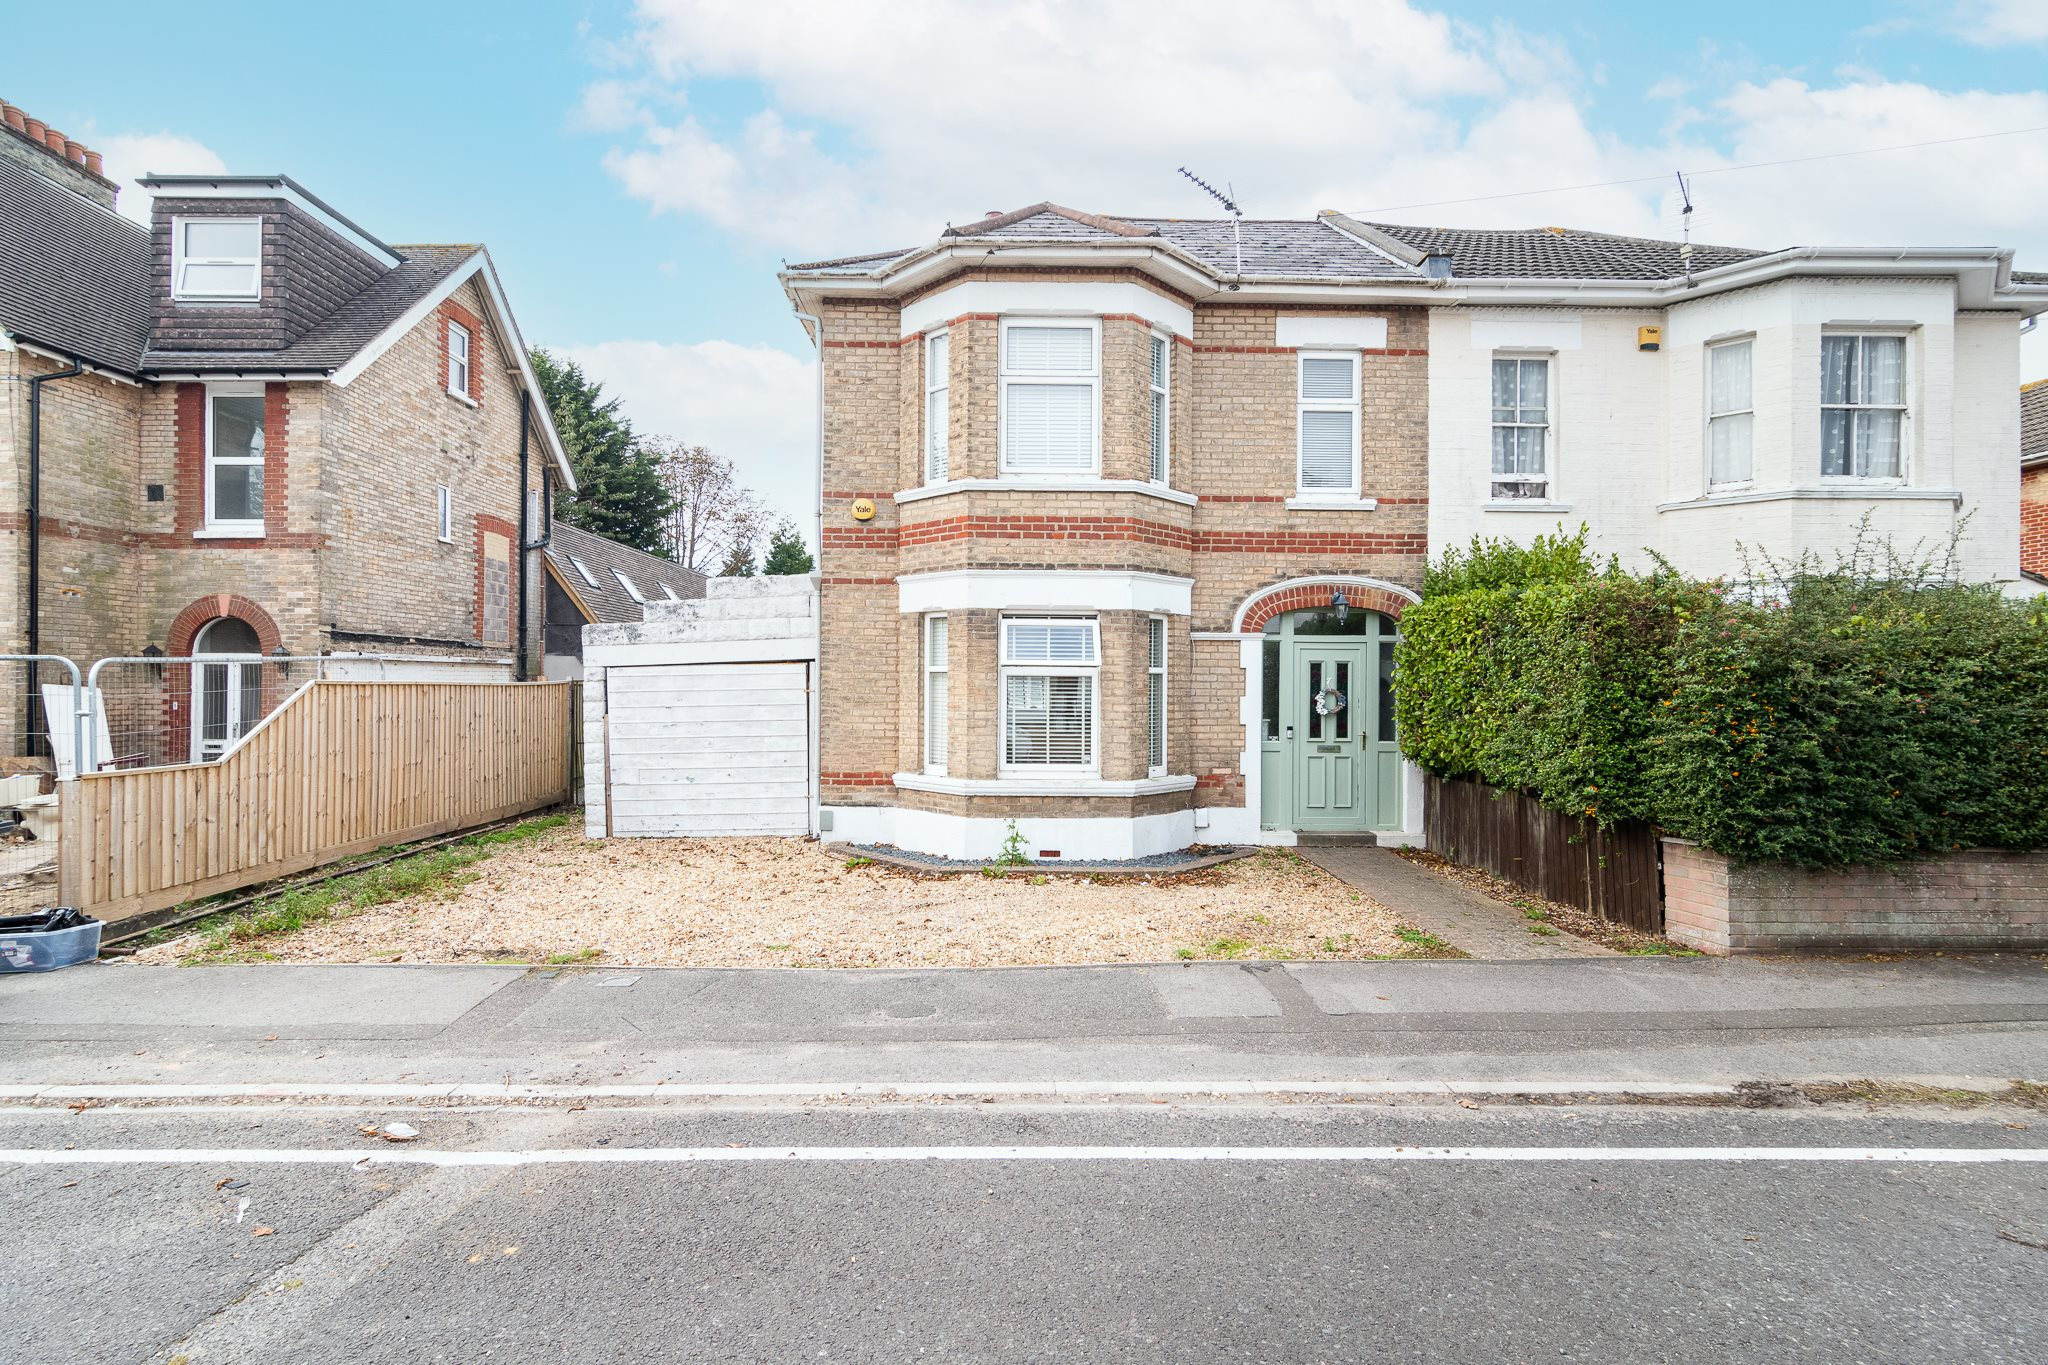 4 bed house to rent in Hamilton Road, Bournemouth, BH1